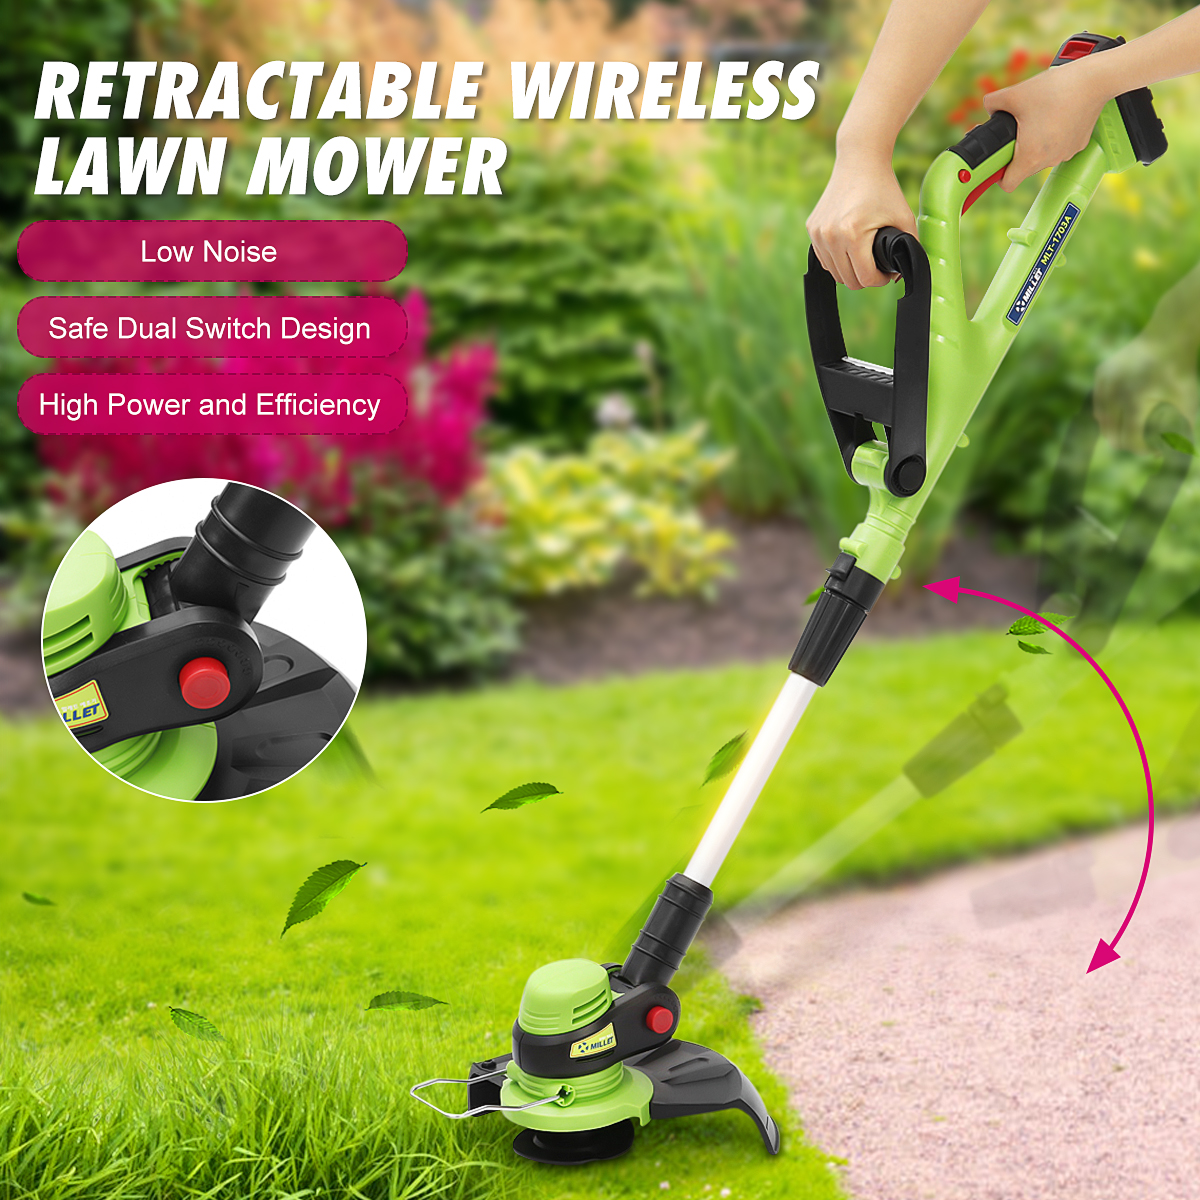 Electric Lawn Mower Wireless  Grass Trimmer Outdoor Lawnmower 20V 2000mAh 12500rpm Cordless Adjusted Grass Cutter Garden Tools